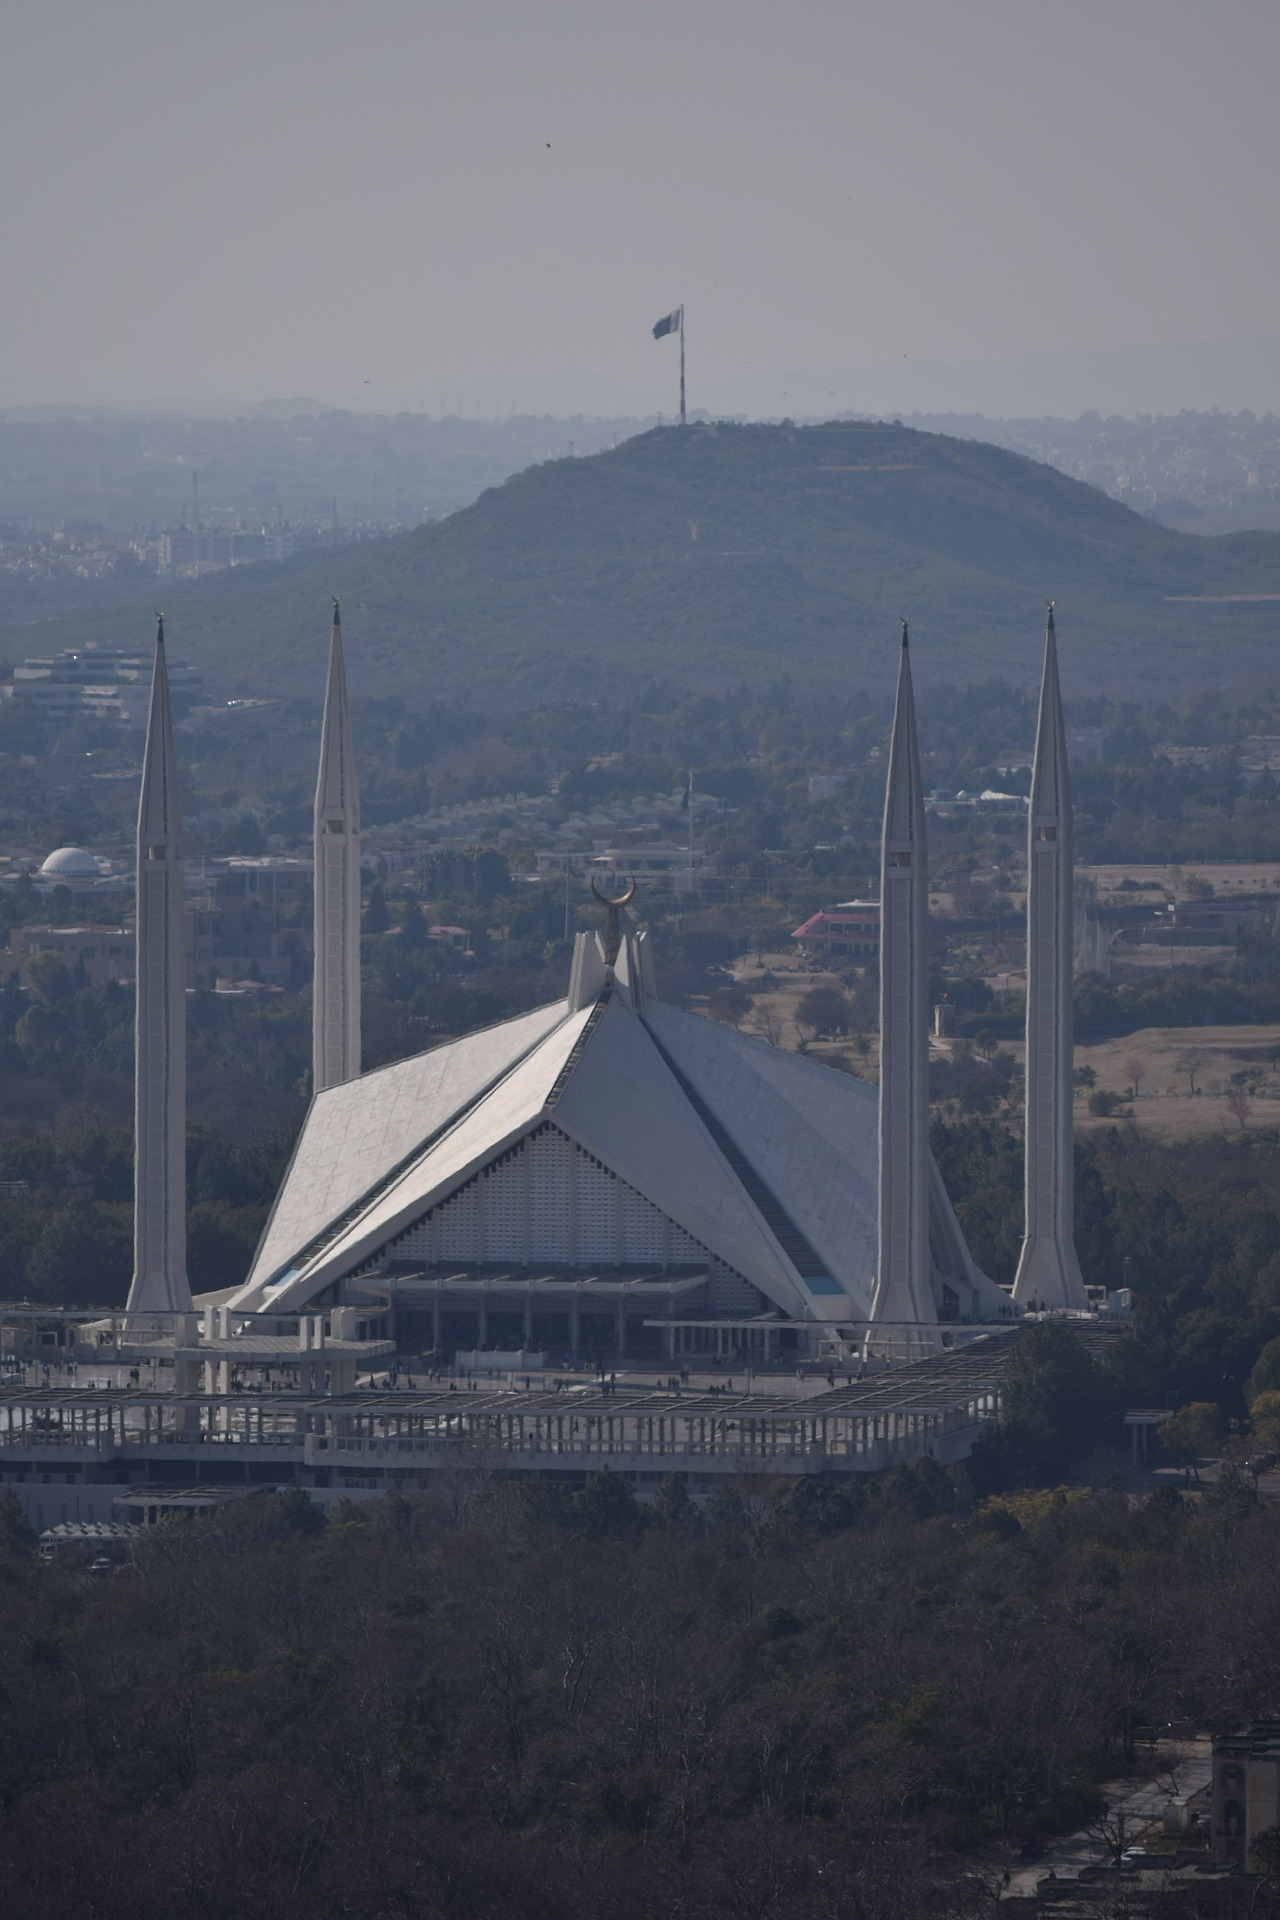 Things to explore in Pakistan - Marhalla Hills, Islamabad